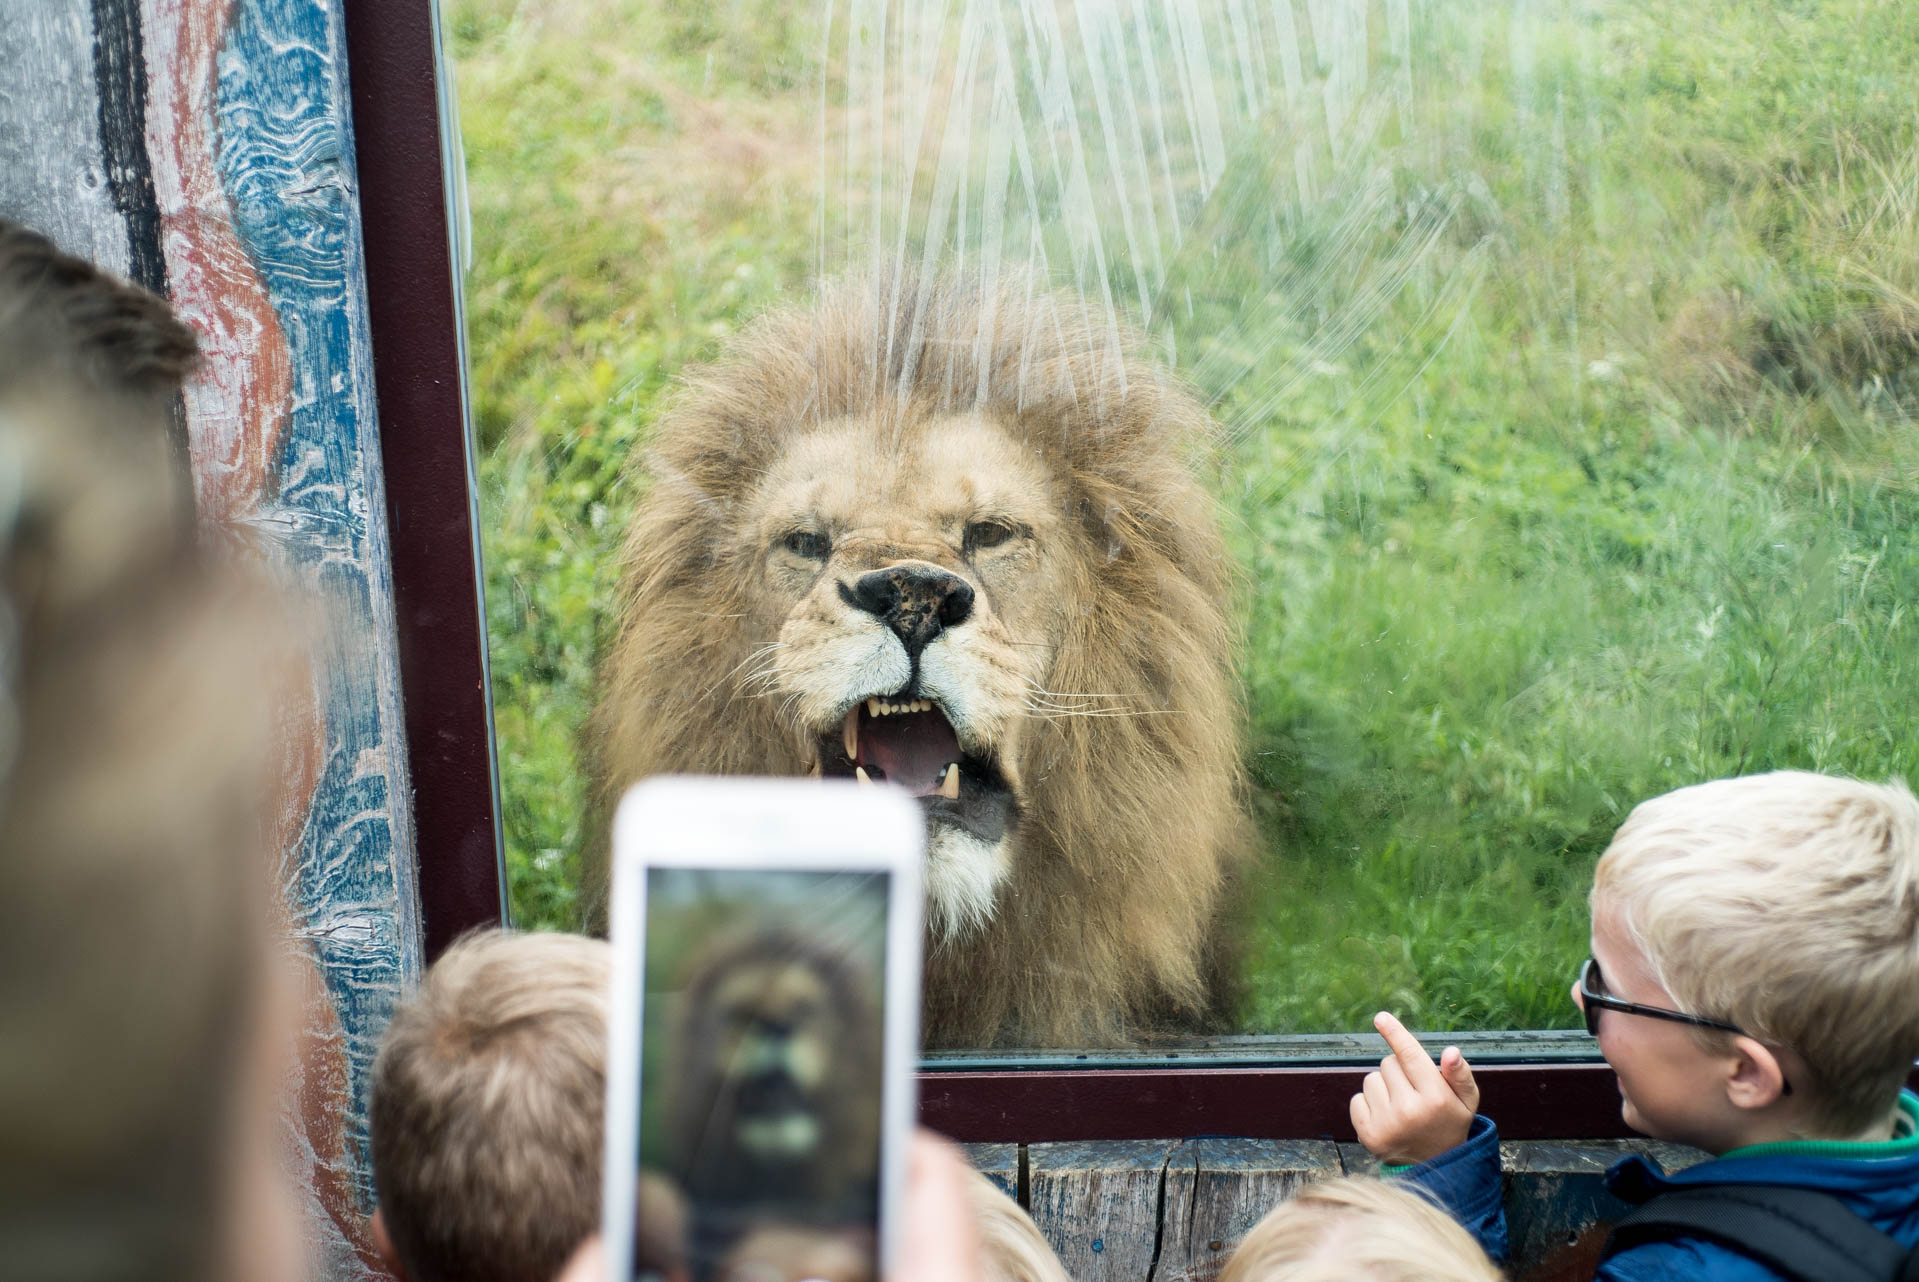 Angry Lion from Kristiansand Zoo - Photo: Stephan Wetaas